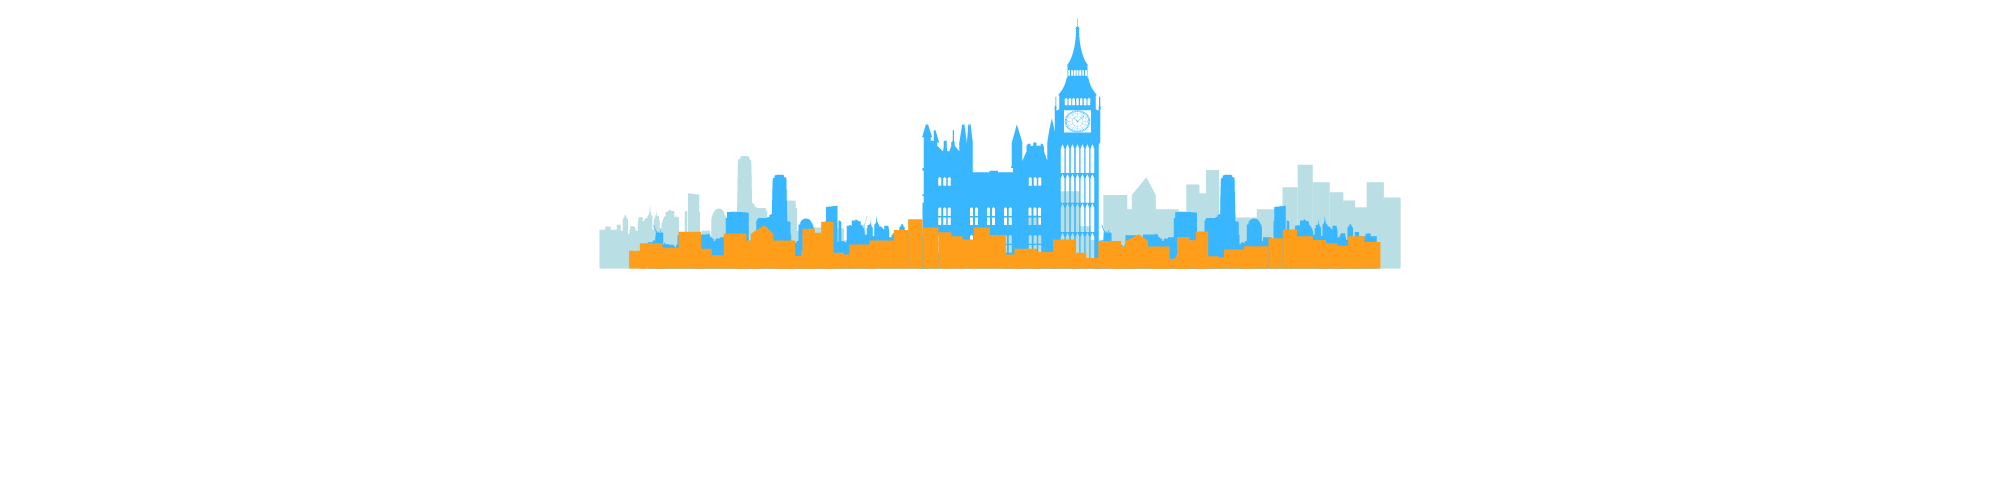 New design Our City